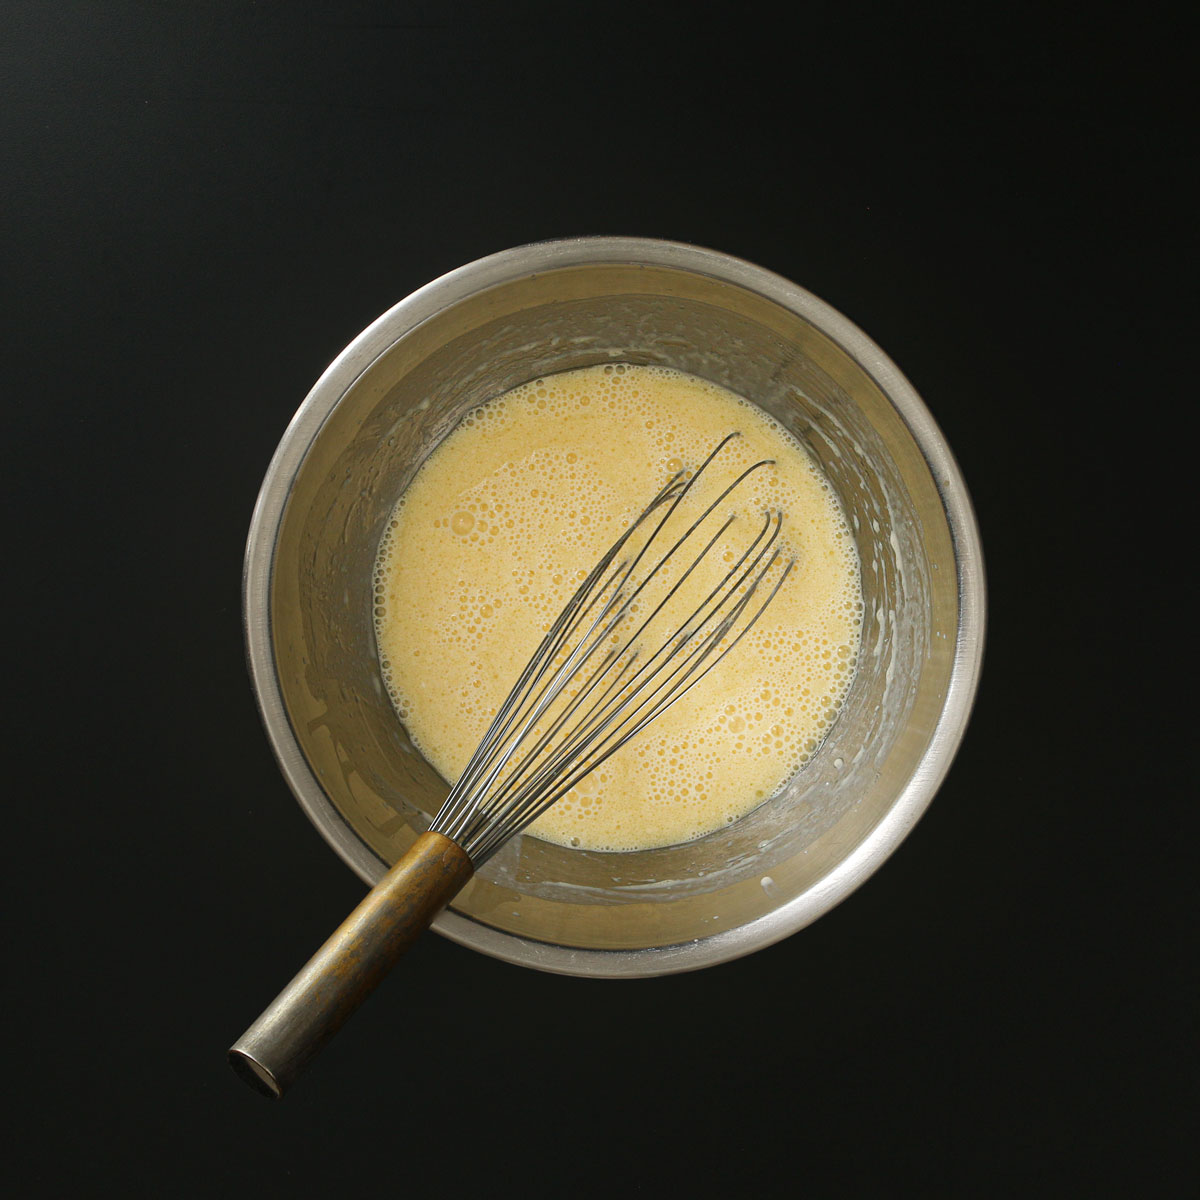 whisk submerged into wet ingredients that have been mixed together in metal bowl.